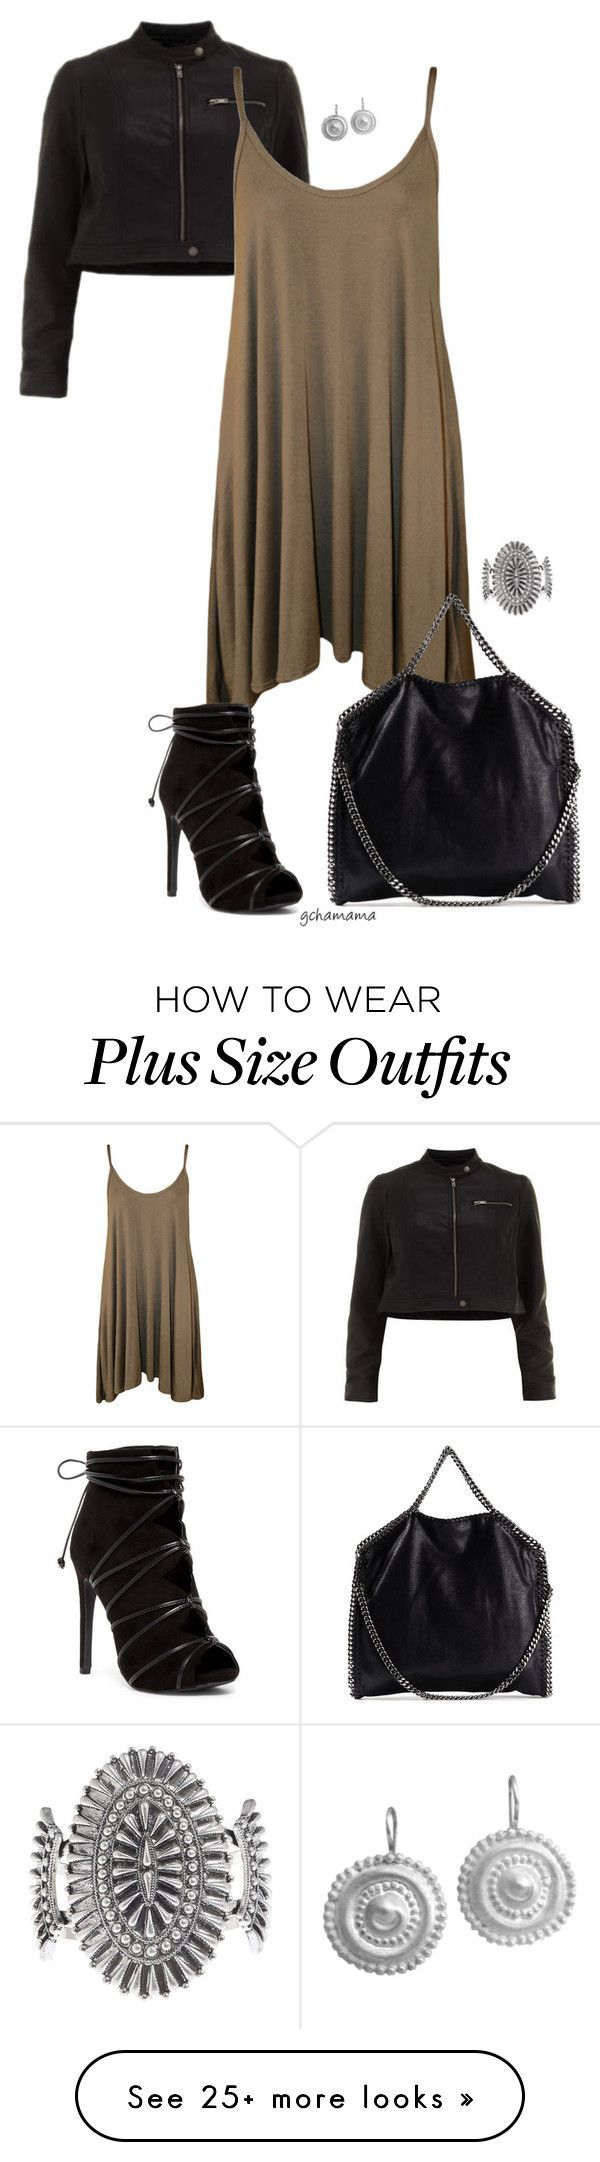 """On the off chance- plus size"" by gchamama on Polyvore featuring WearAll, STELLA McCARTNEY, Lucky Brand and Chen Fuchs Jewelry"